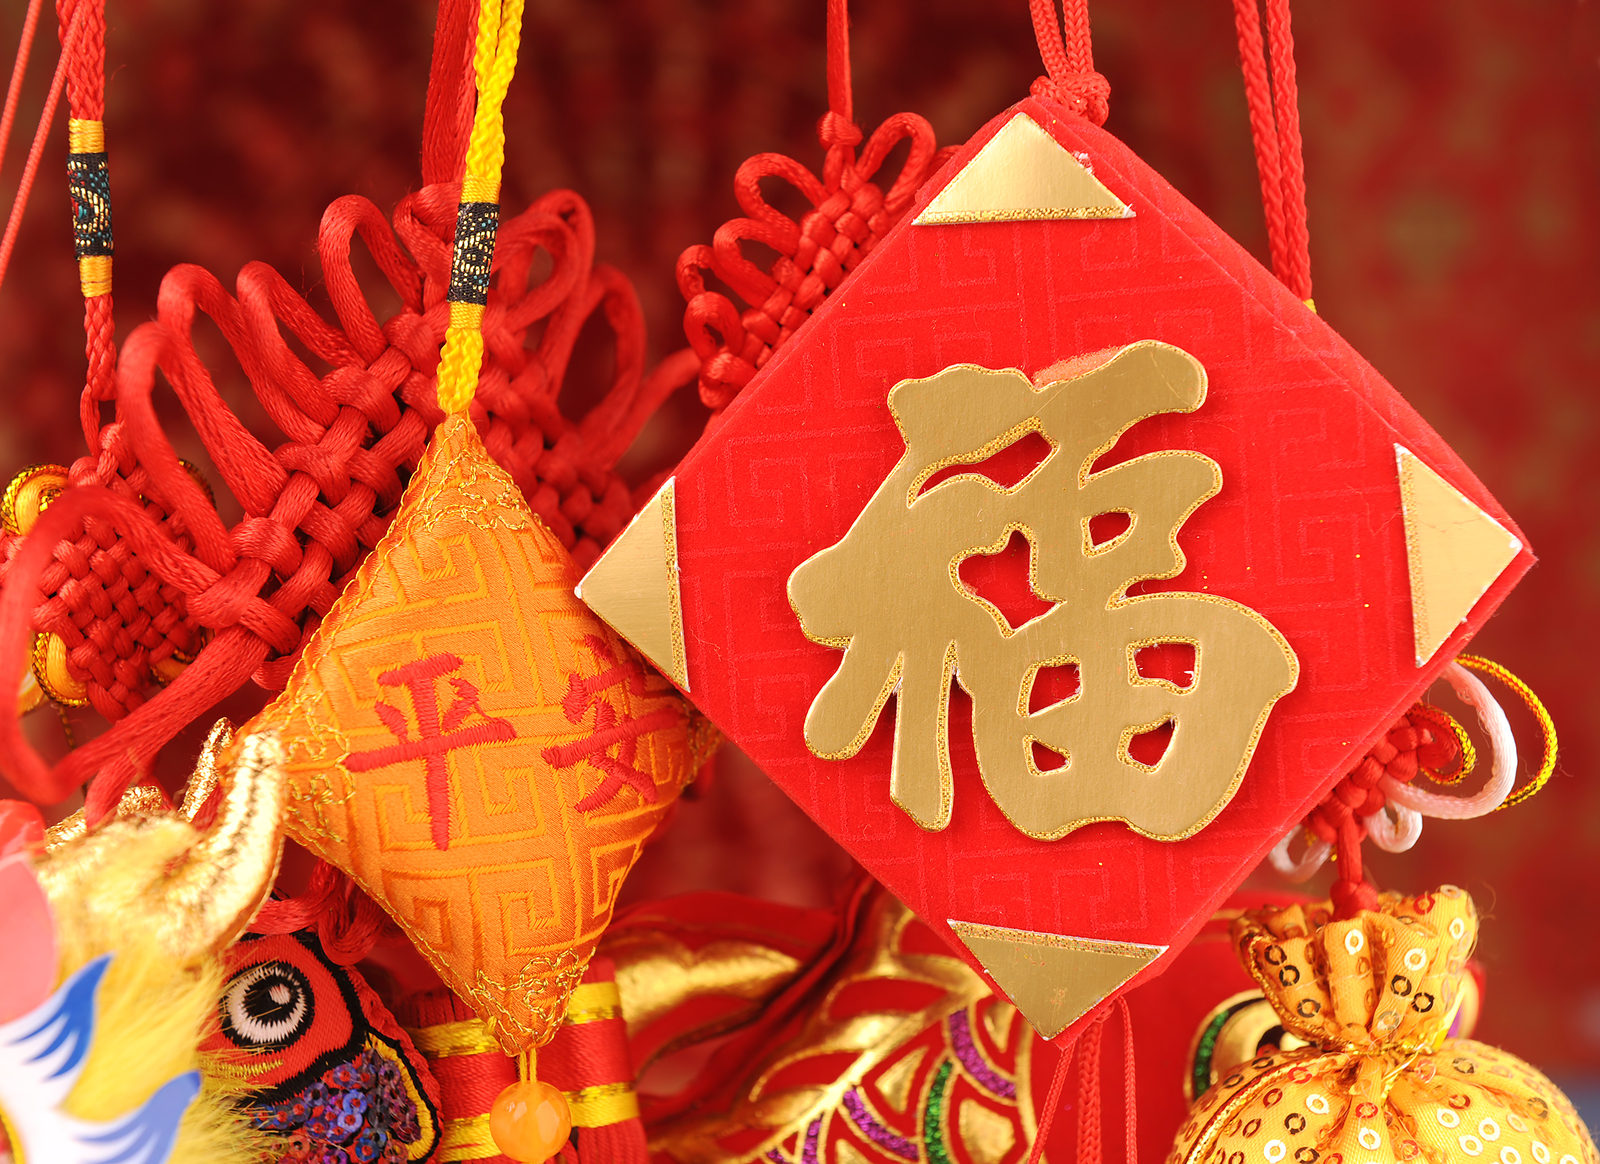 10 Things You Should Avoid Doing During Lunar New Year